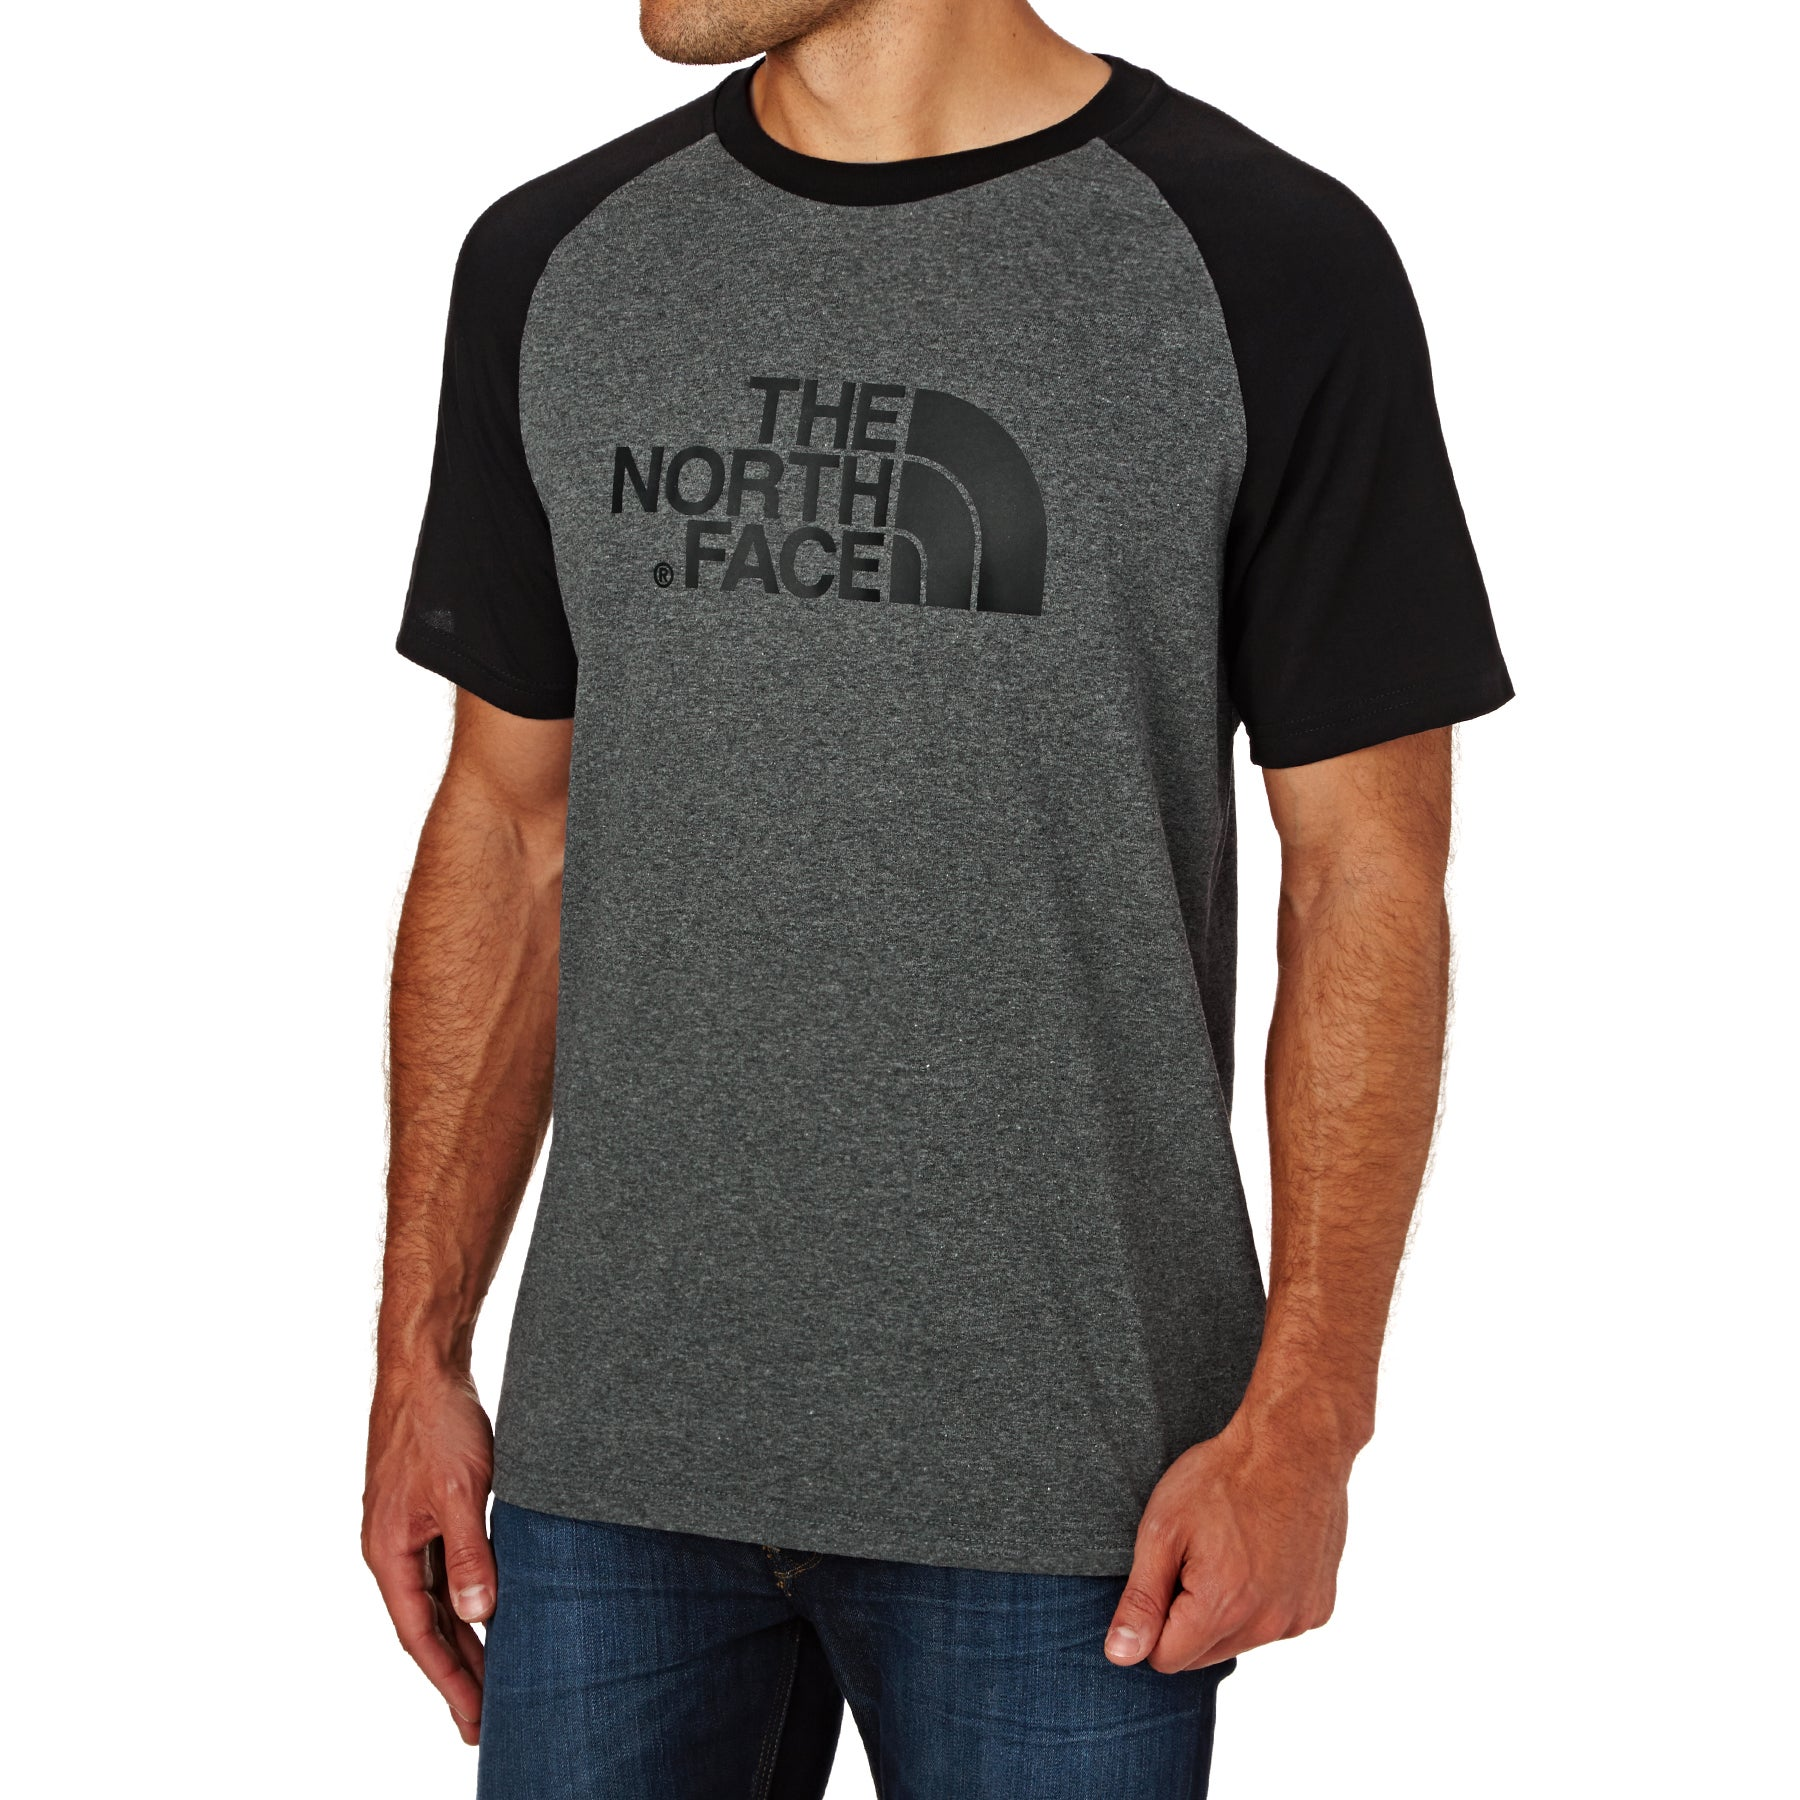 North Face Raglan Easy Short Sleeve T-Shirt - TNF Medium Grey Heather